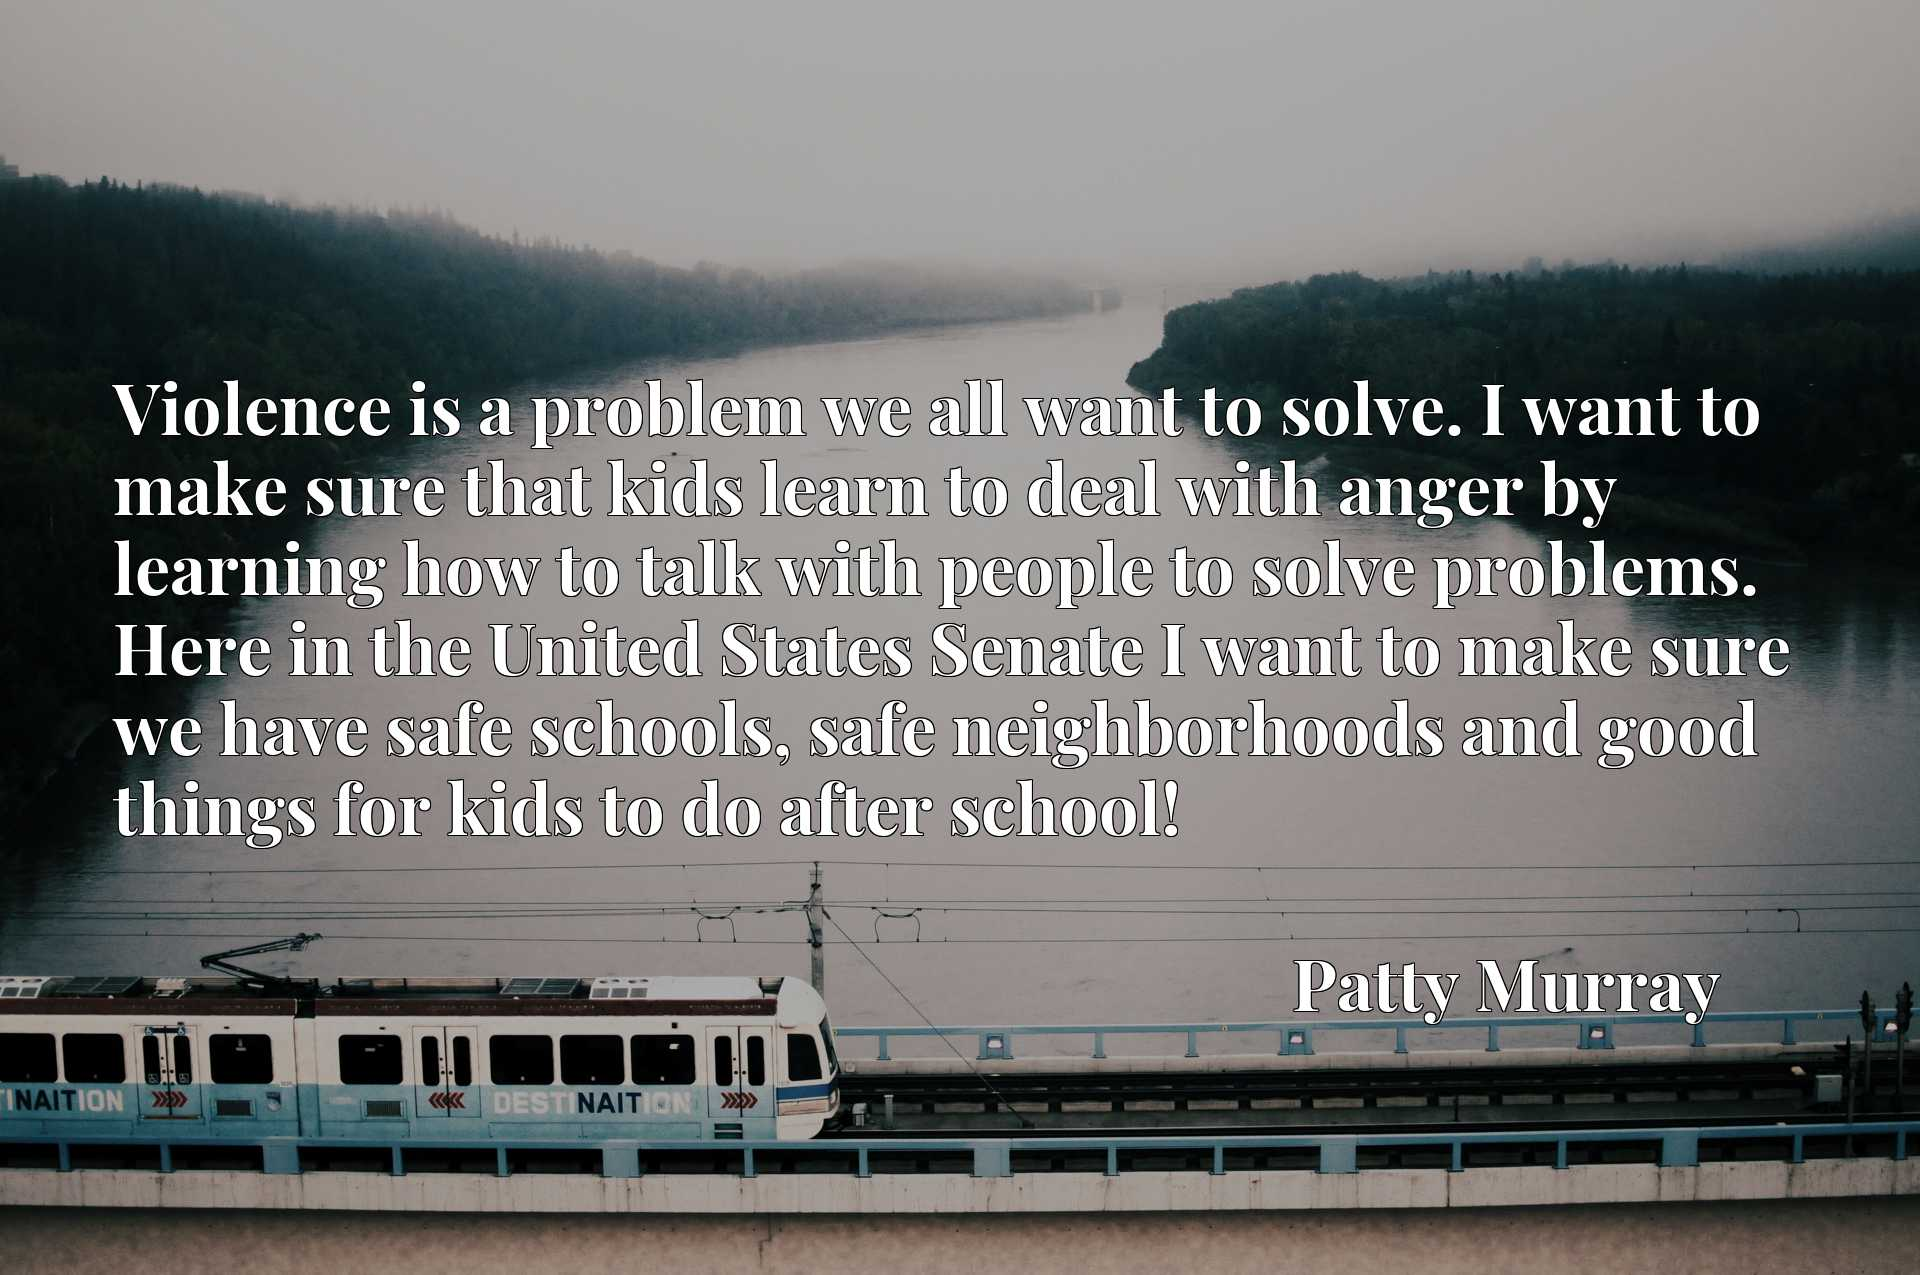 Violence is a problem we all want to solve. I want to make sure that kids learn to deal with anger by learning how to talk with people to solve problems. Here in the United States Senate I want to make sure we have safe schools, safe neighborhoods and good things for kids to do after school!